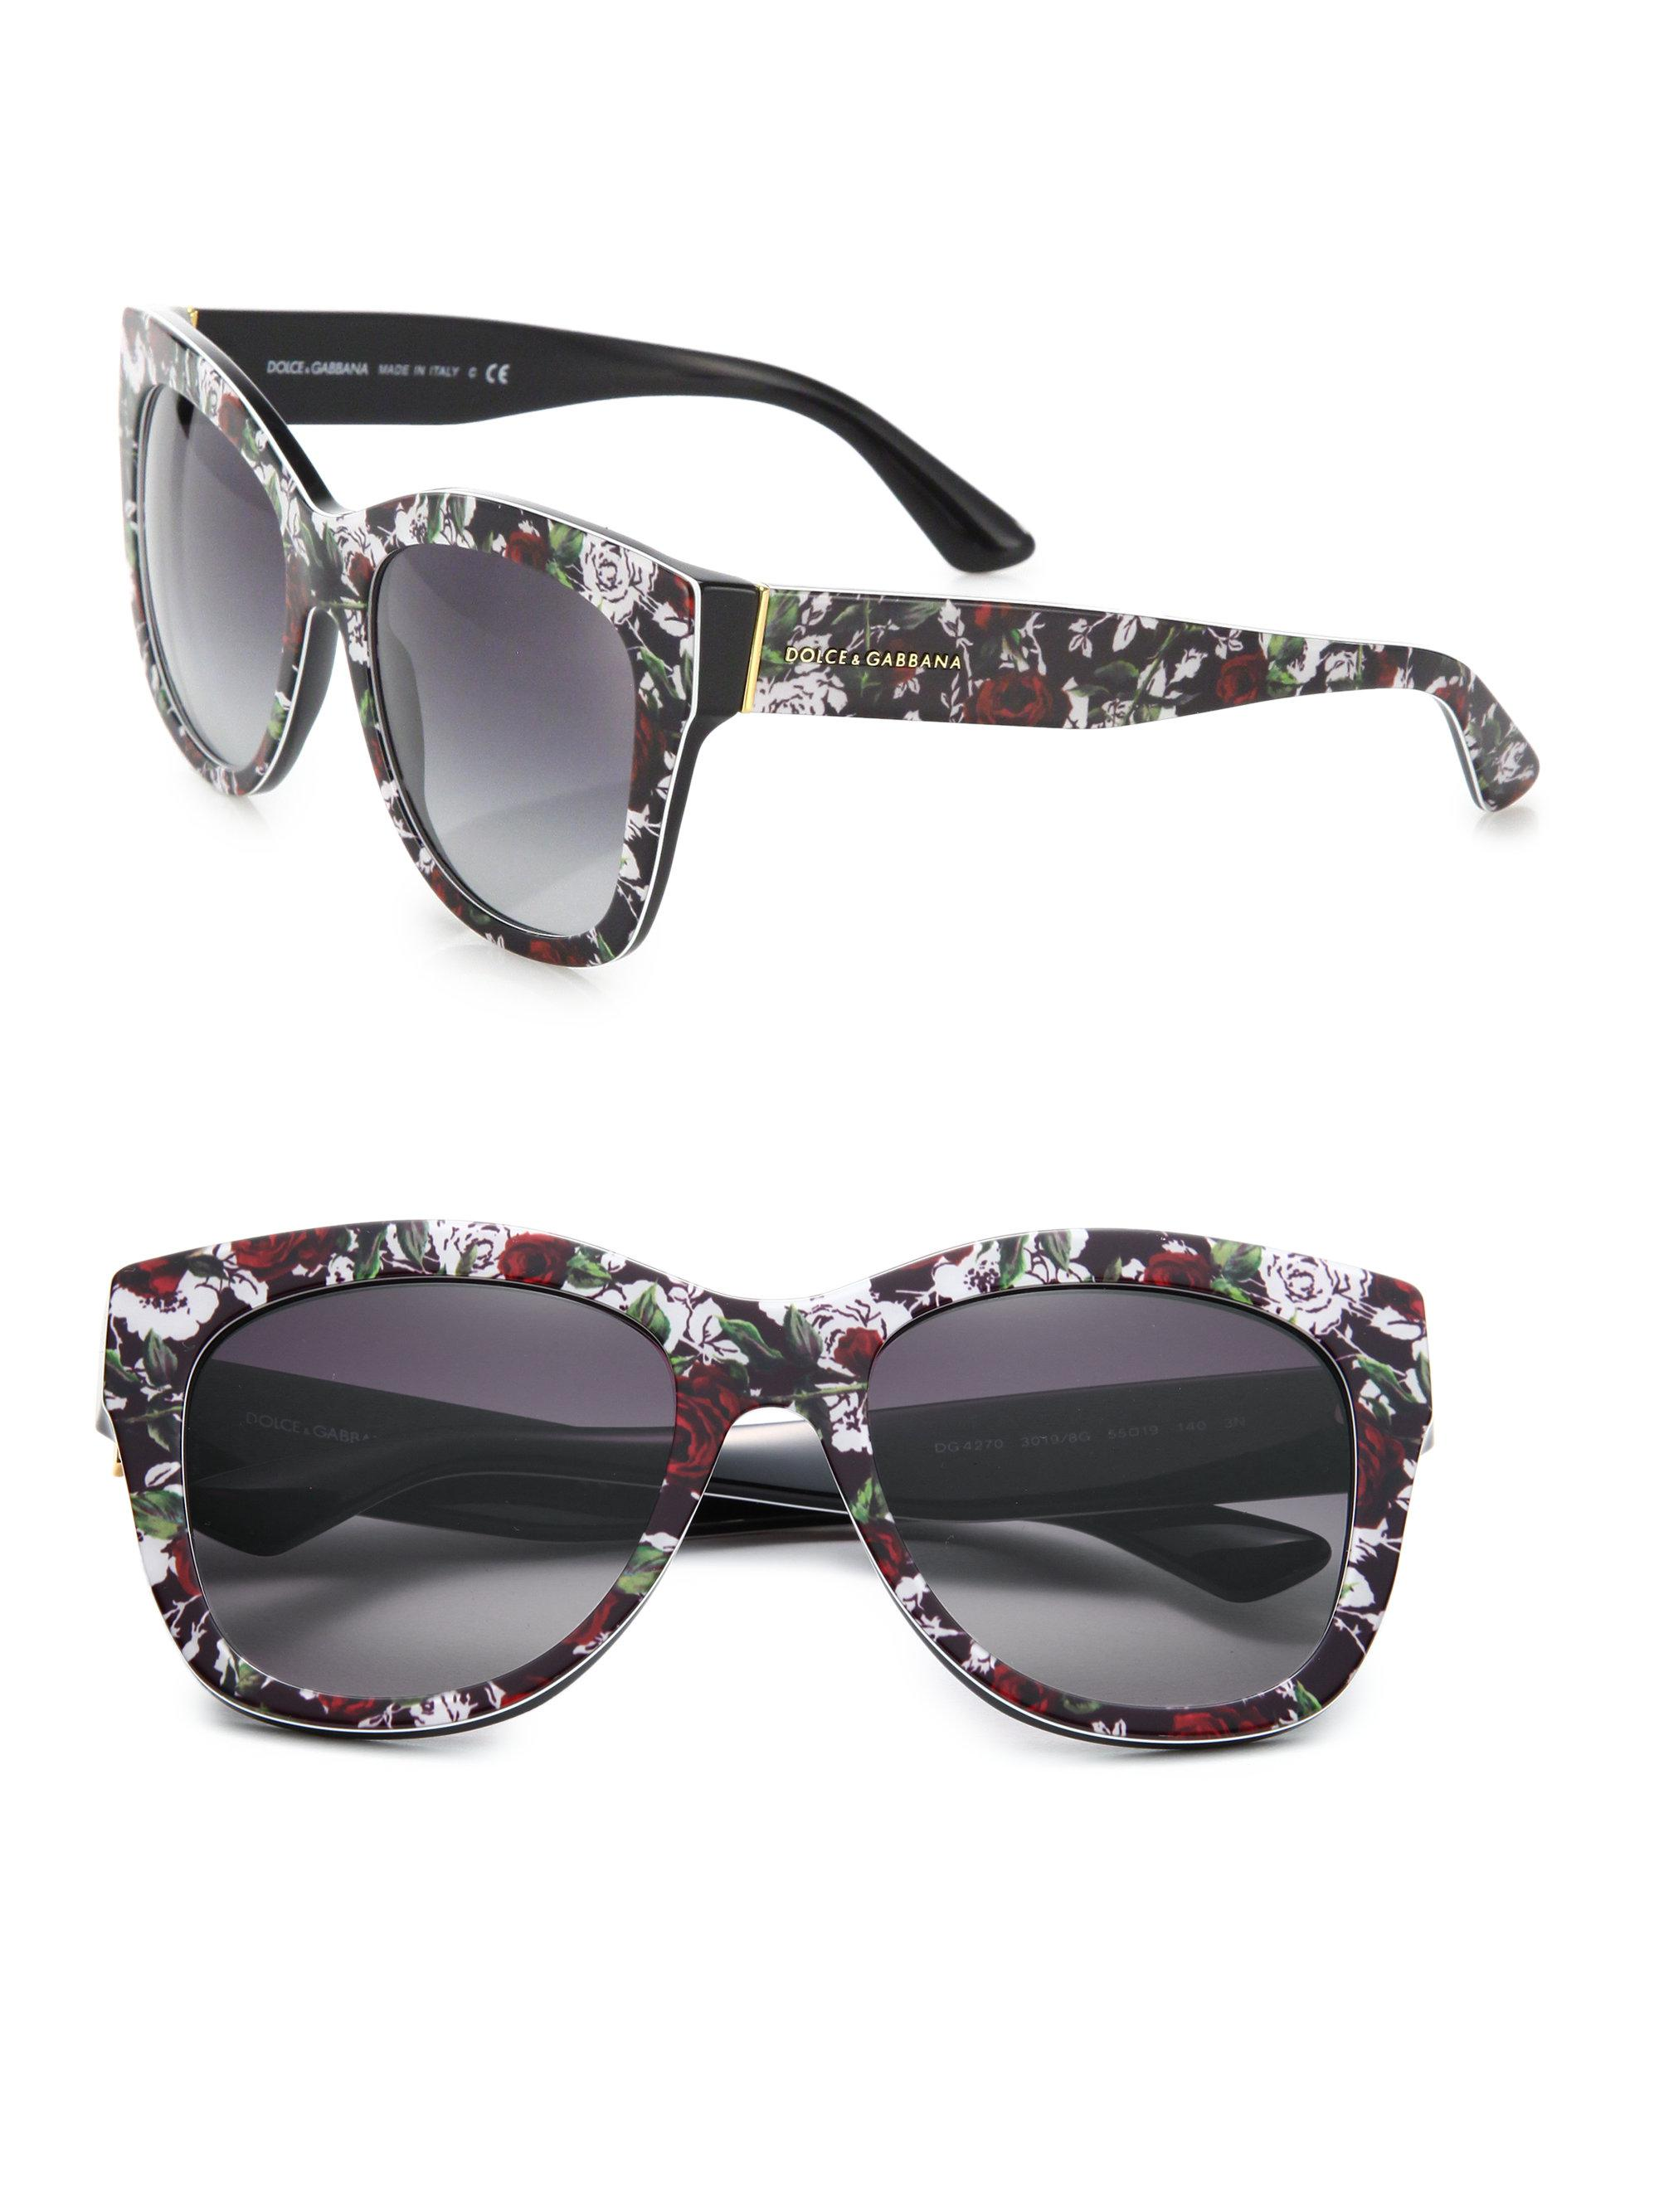 1e9410f0fcaa Dolce & Gabbana 55mm Square Floral Acetate Sunglasses in Pink - Lyst